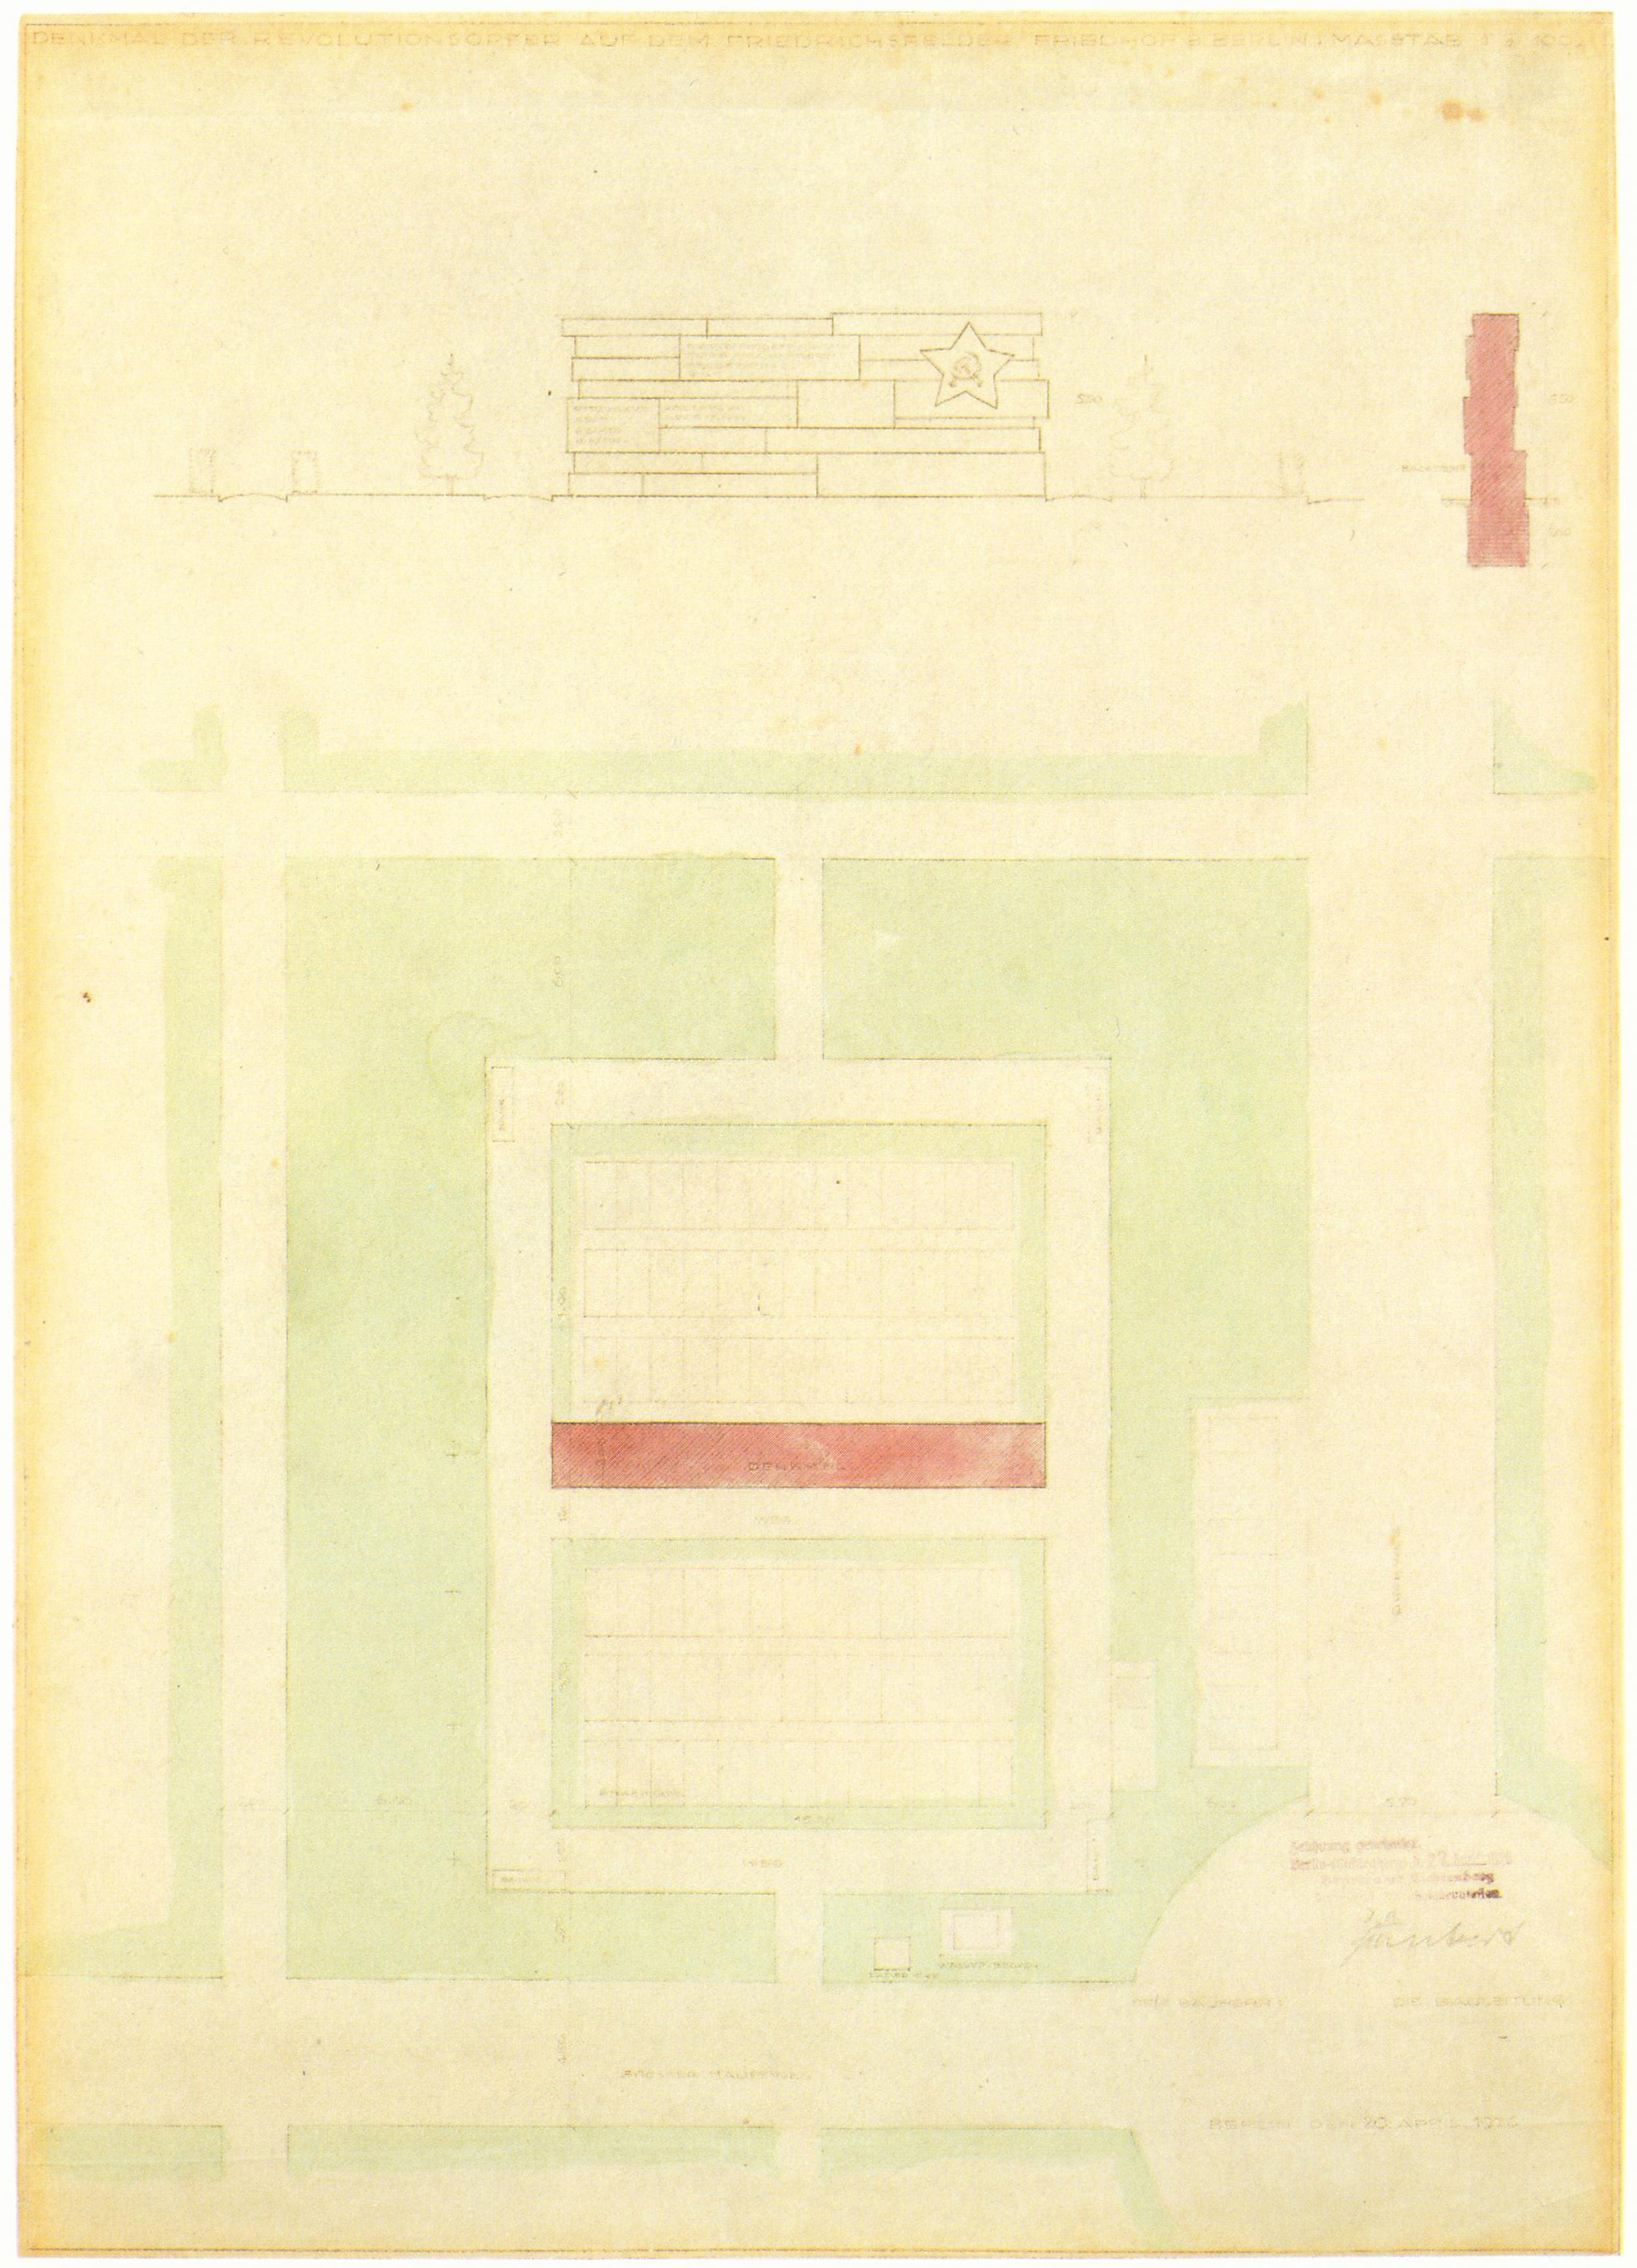 Site-plan, section, and elevation for Mies' monument (1926)